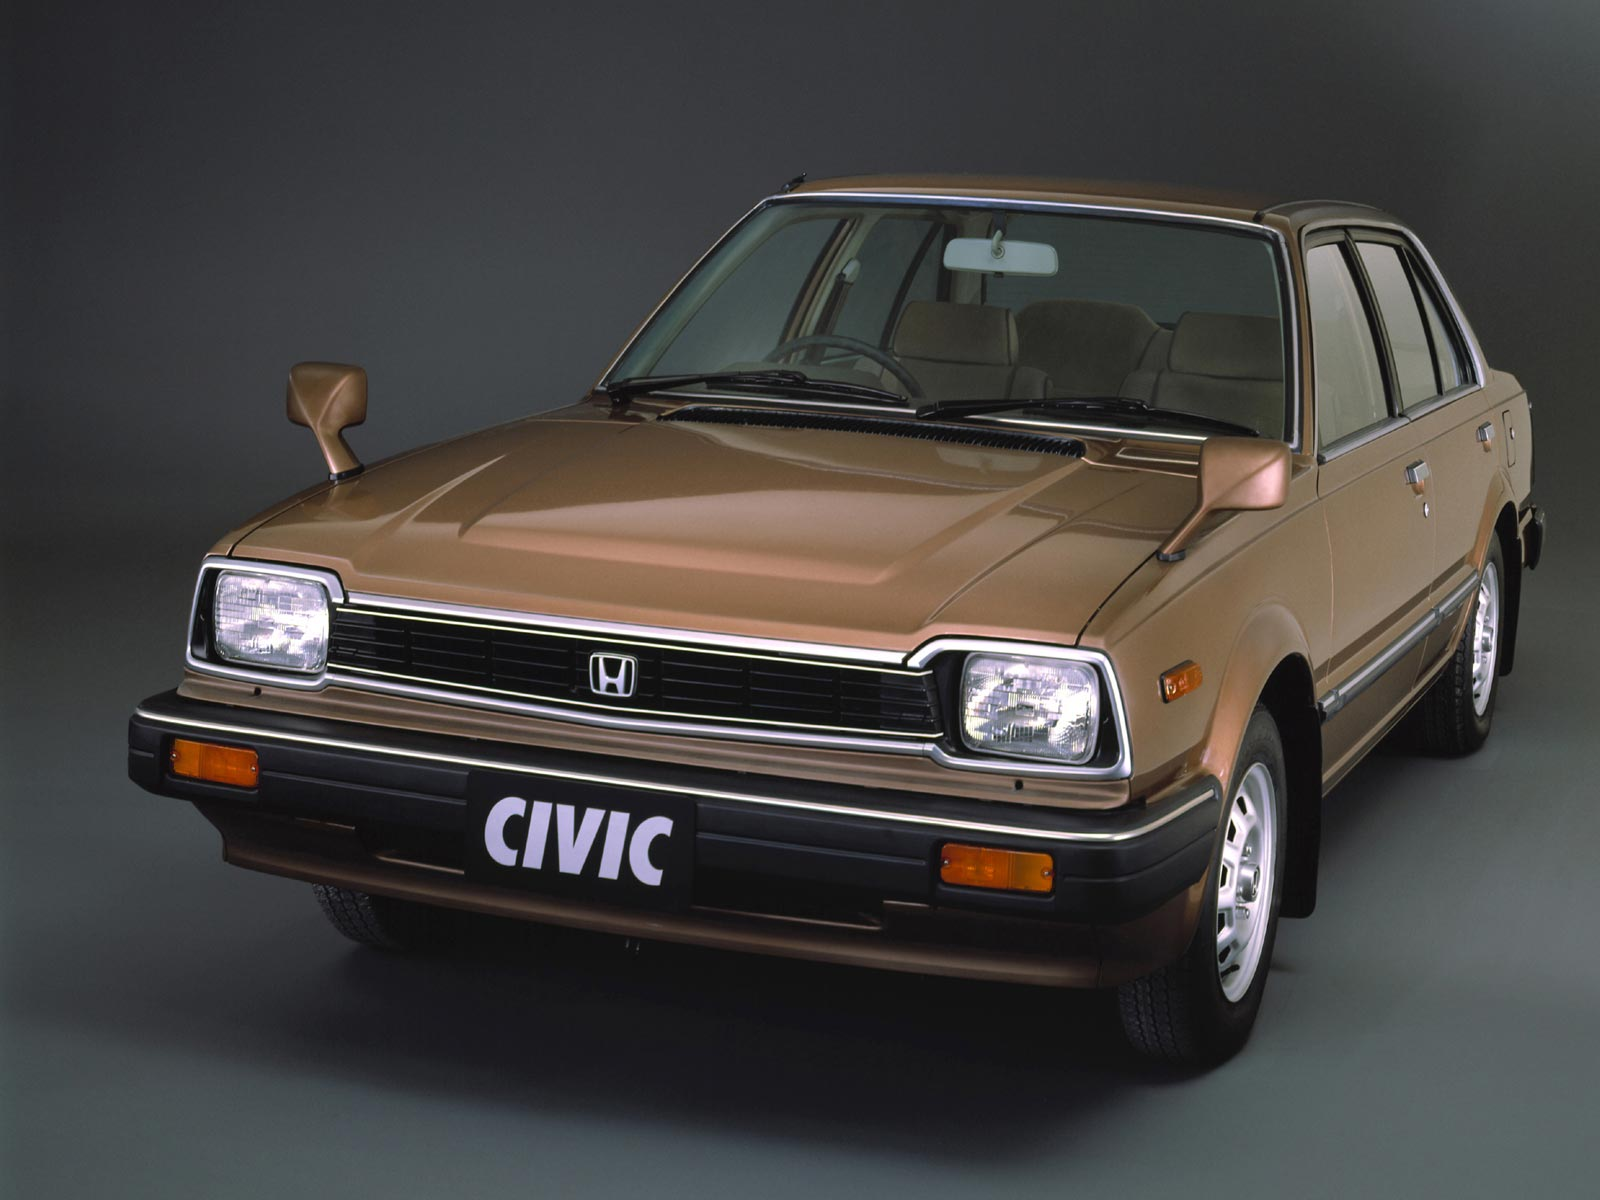 1982 honda civic submited images